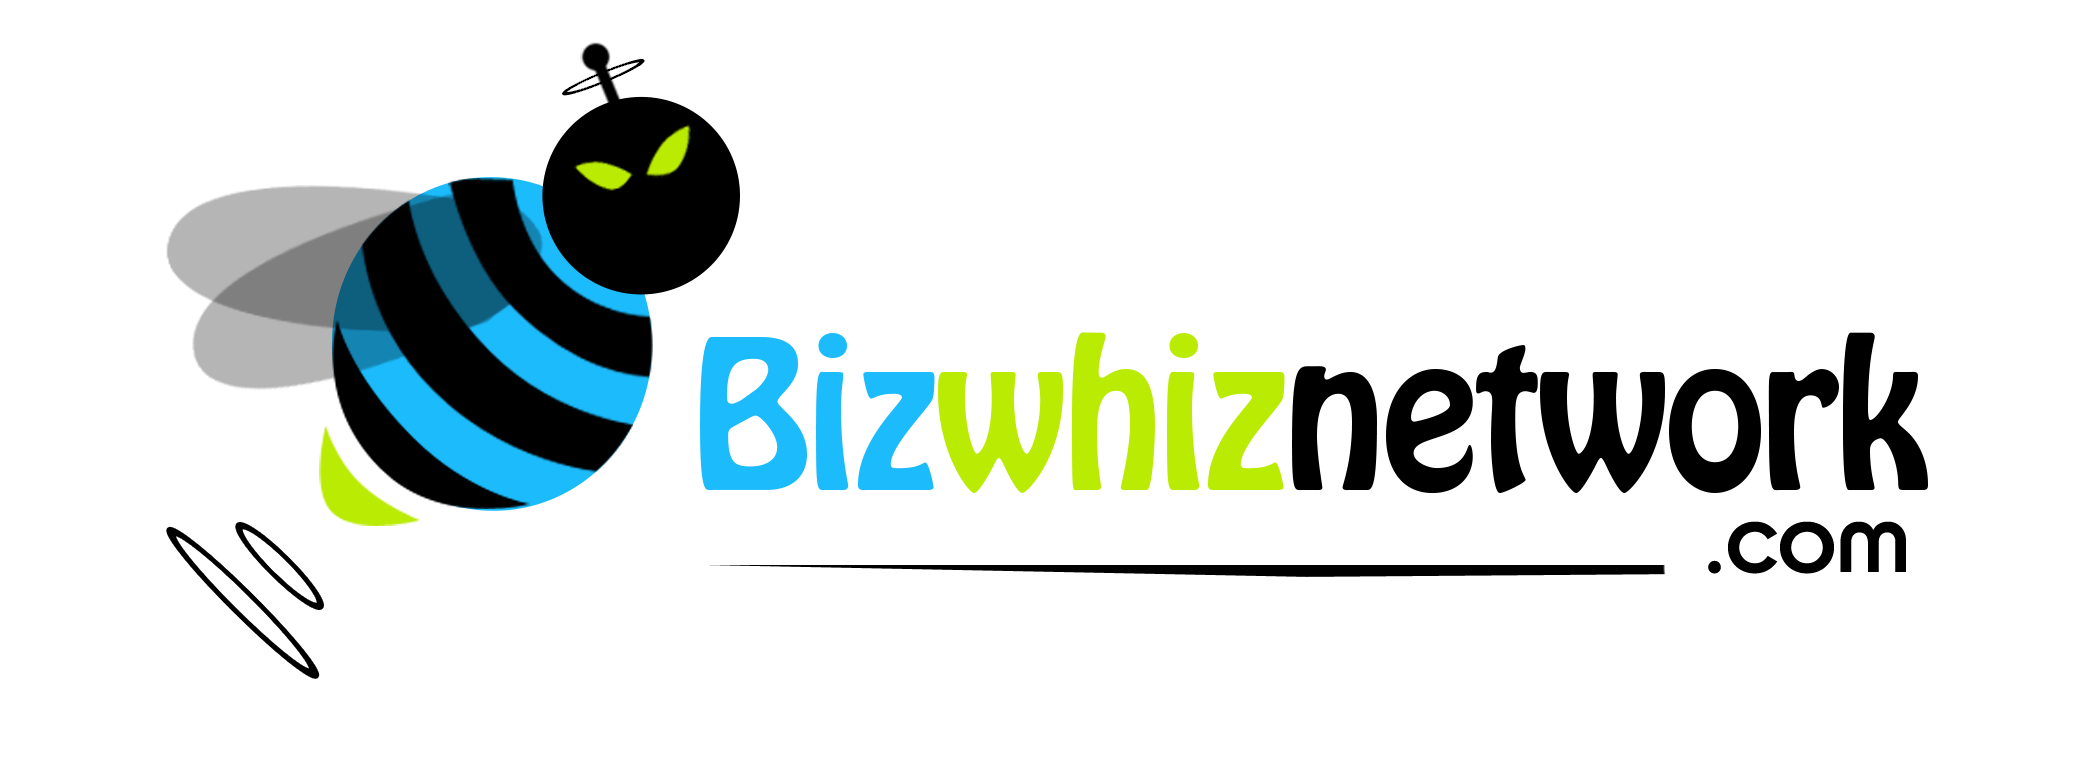 #Bizwhiznetwork.com Innovation ΛI